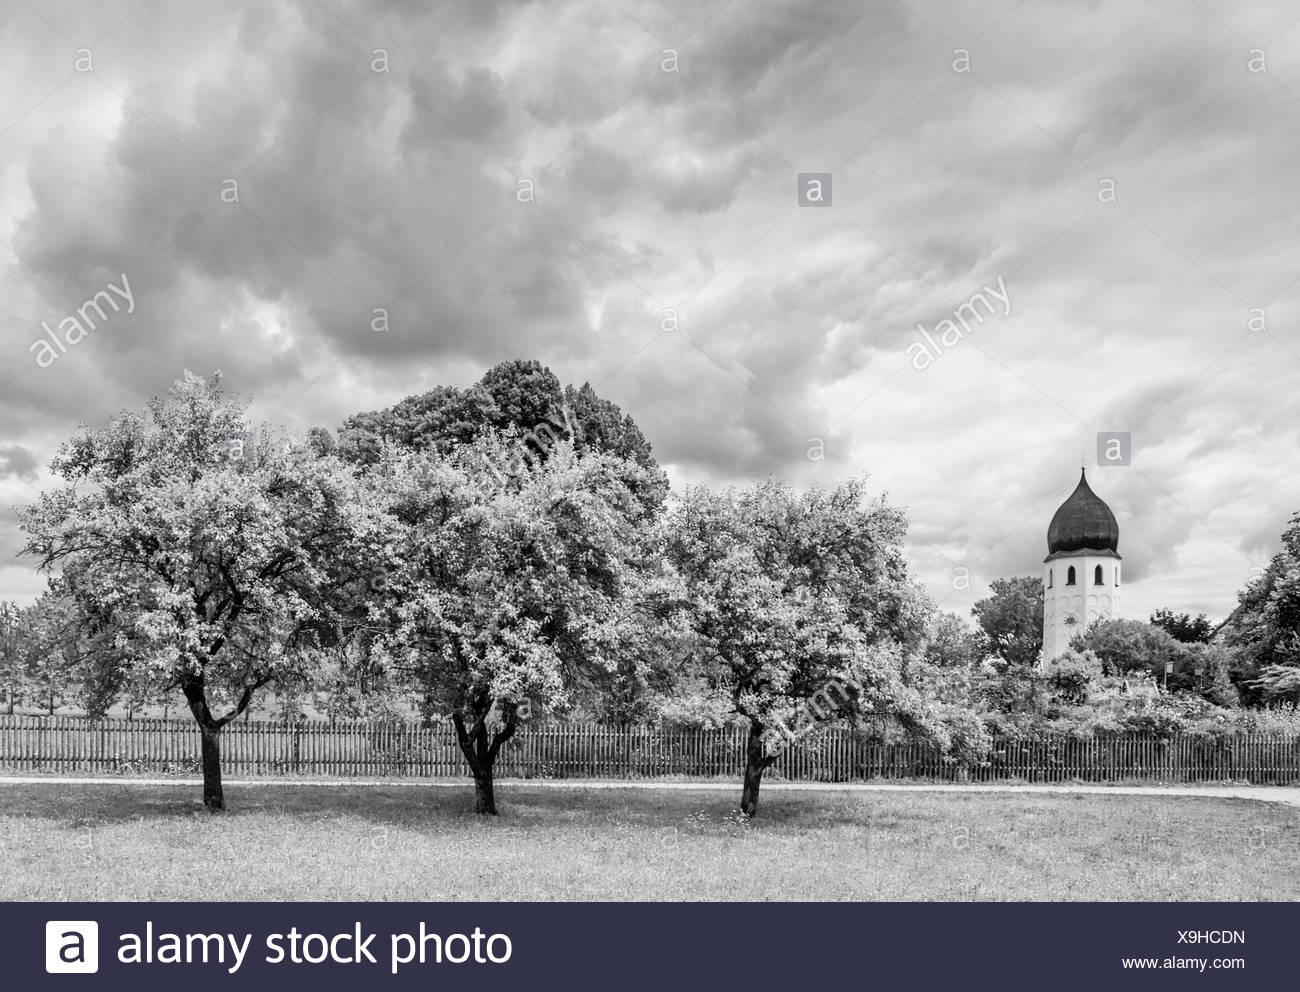 abbey frauenwoerth,frauenchiemsee,chiemgau,bayern,germany Stock Photo